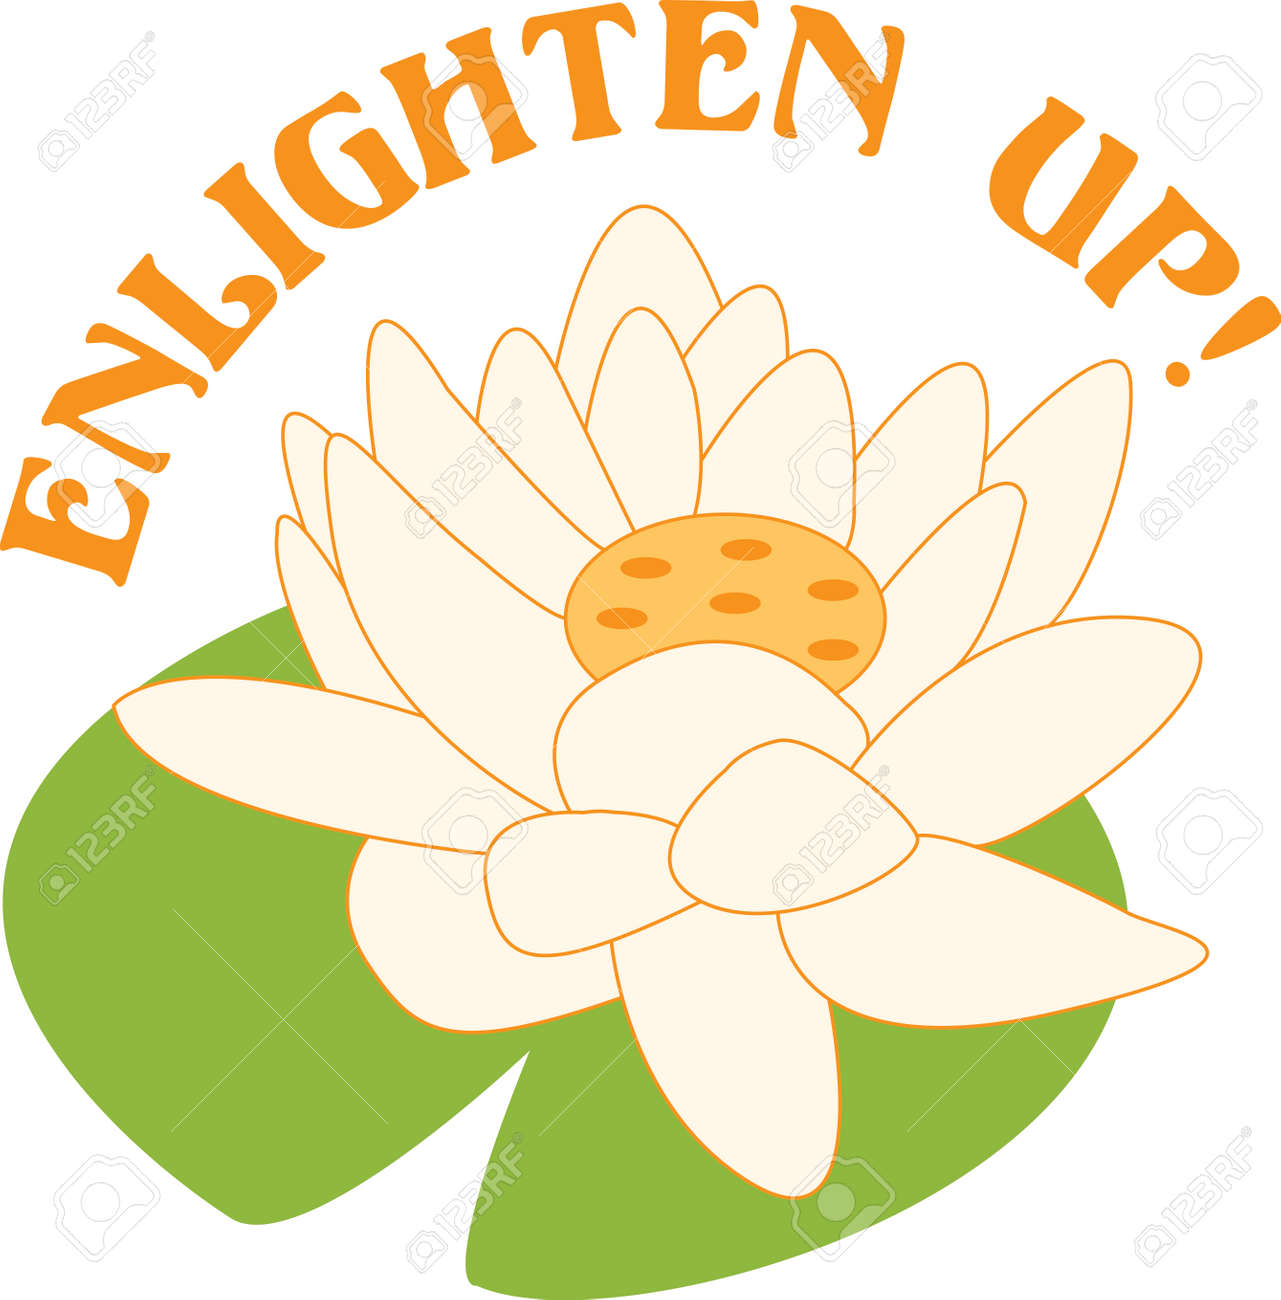 The Lotus Is A Sacred Buddhist Symbol Royalty Free Cliparts